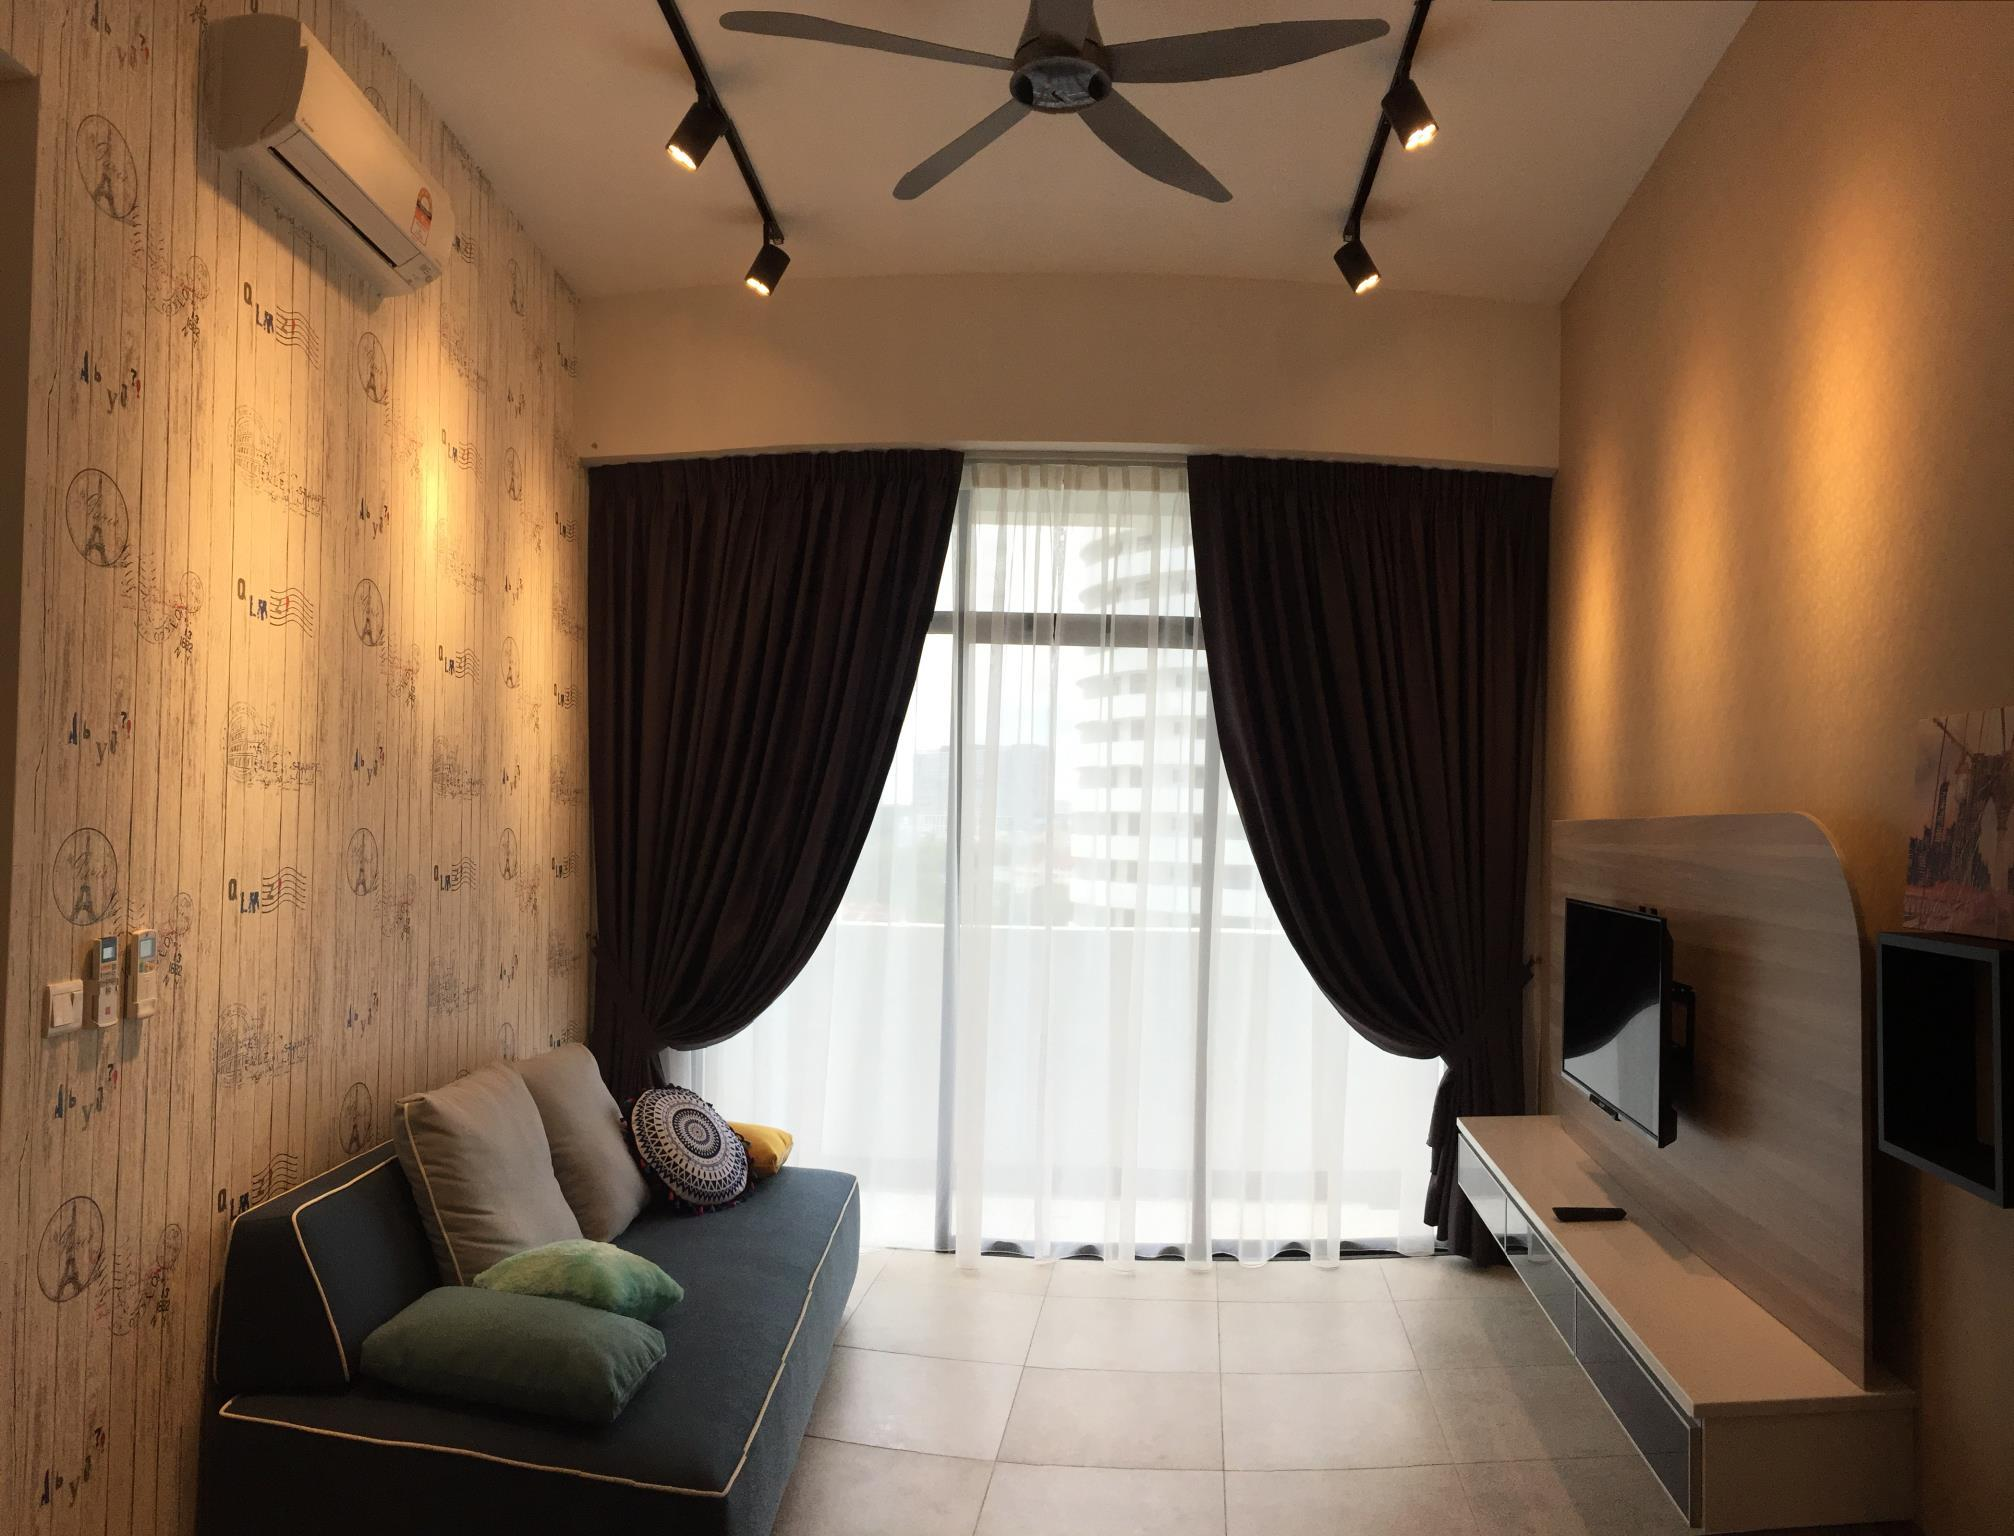 2 Bedroom Private Modern And Hideaway Guesthouse